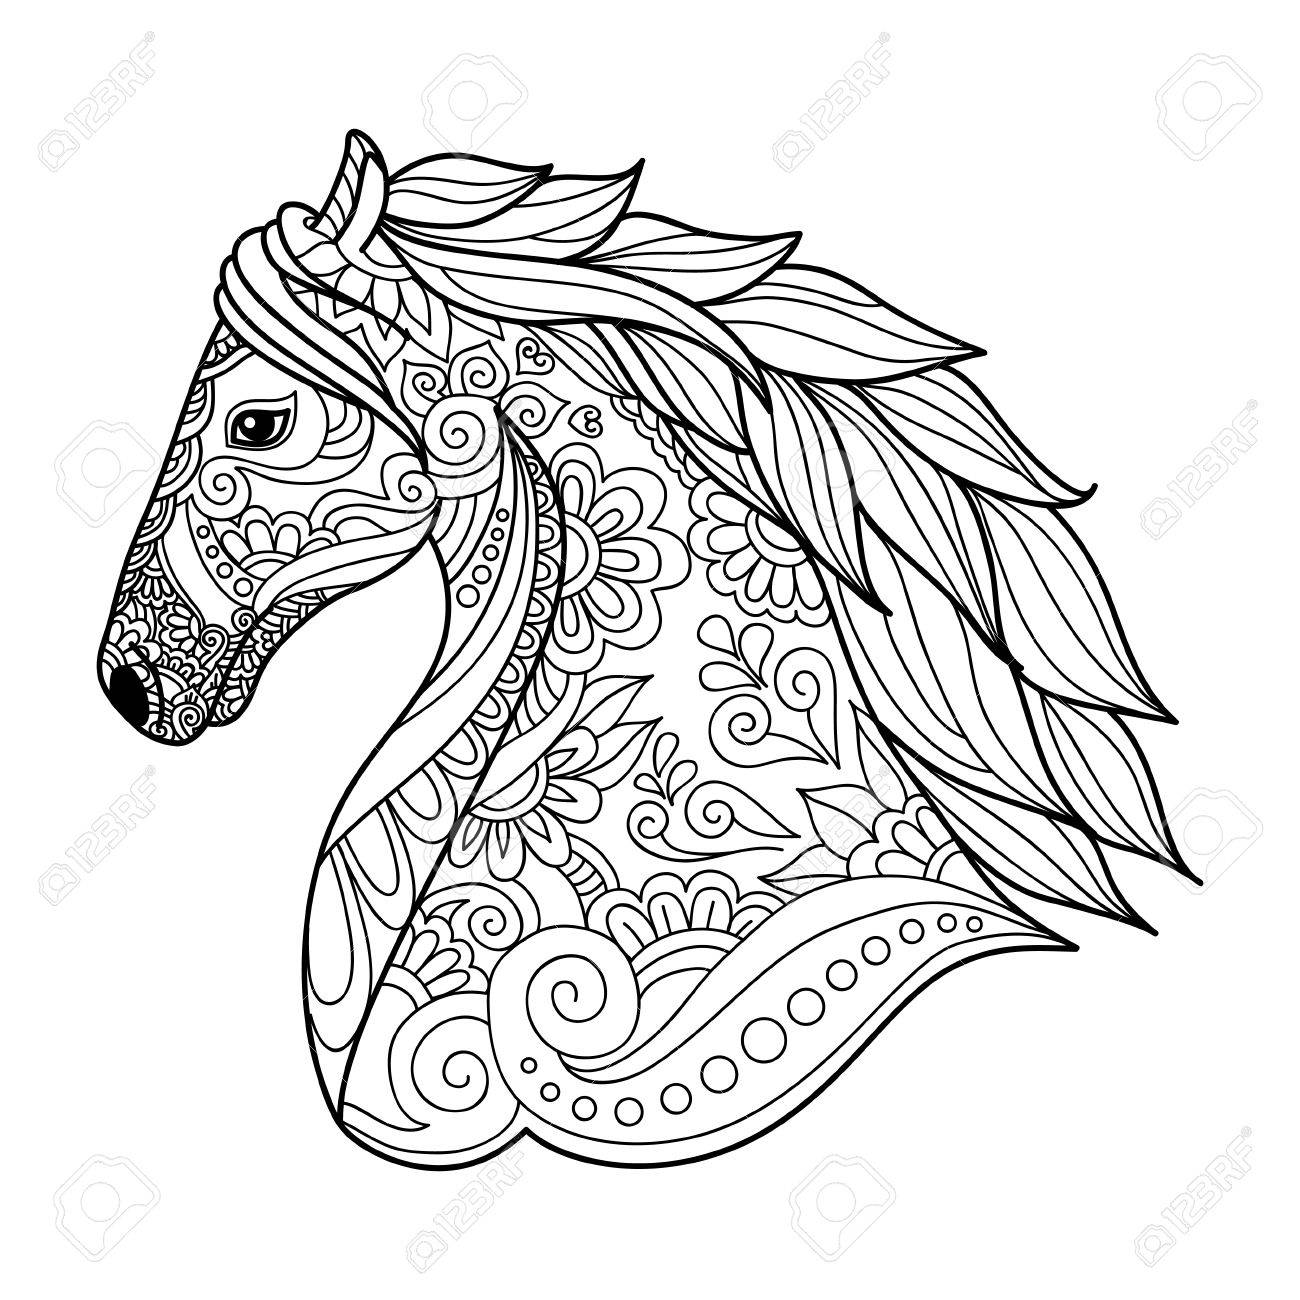 Stylized Head Horse Coloring Book For Adults Vector Illustration ...